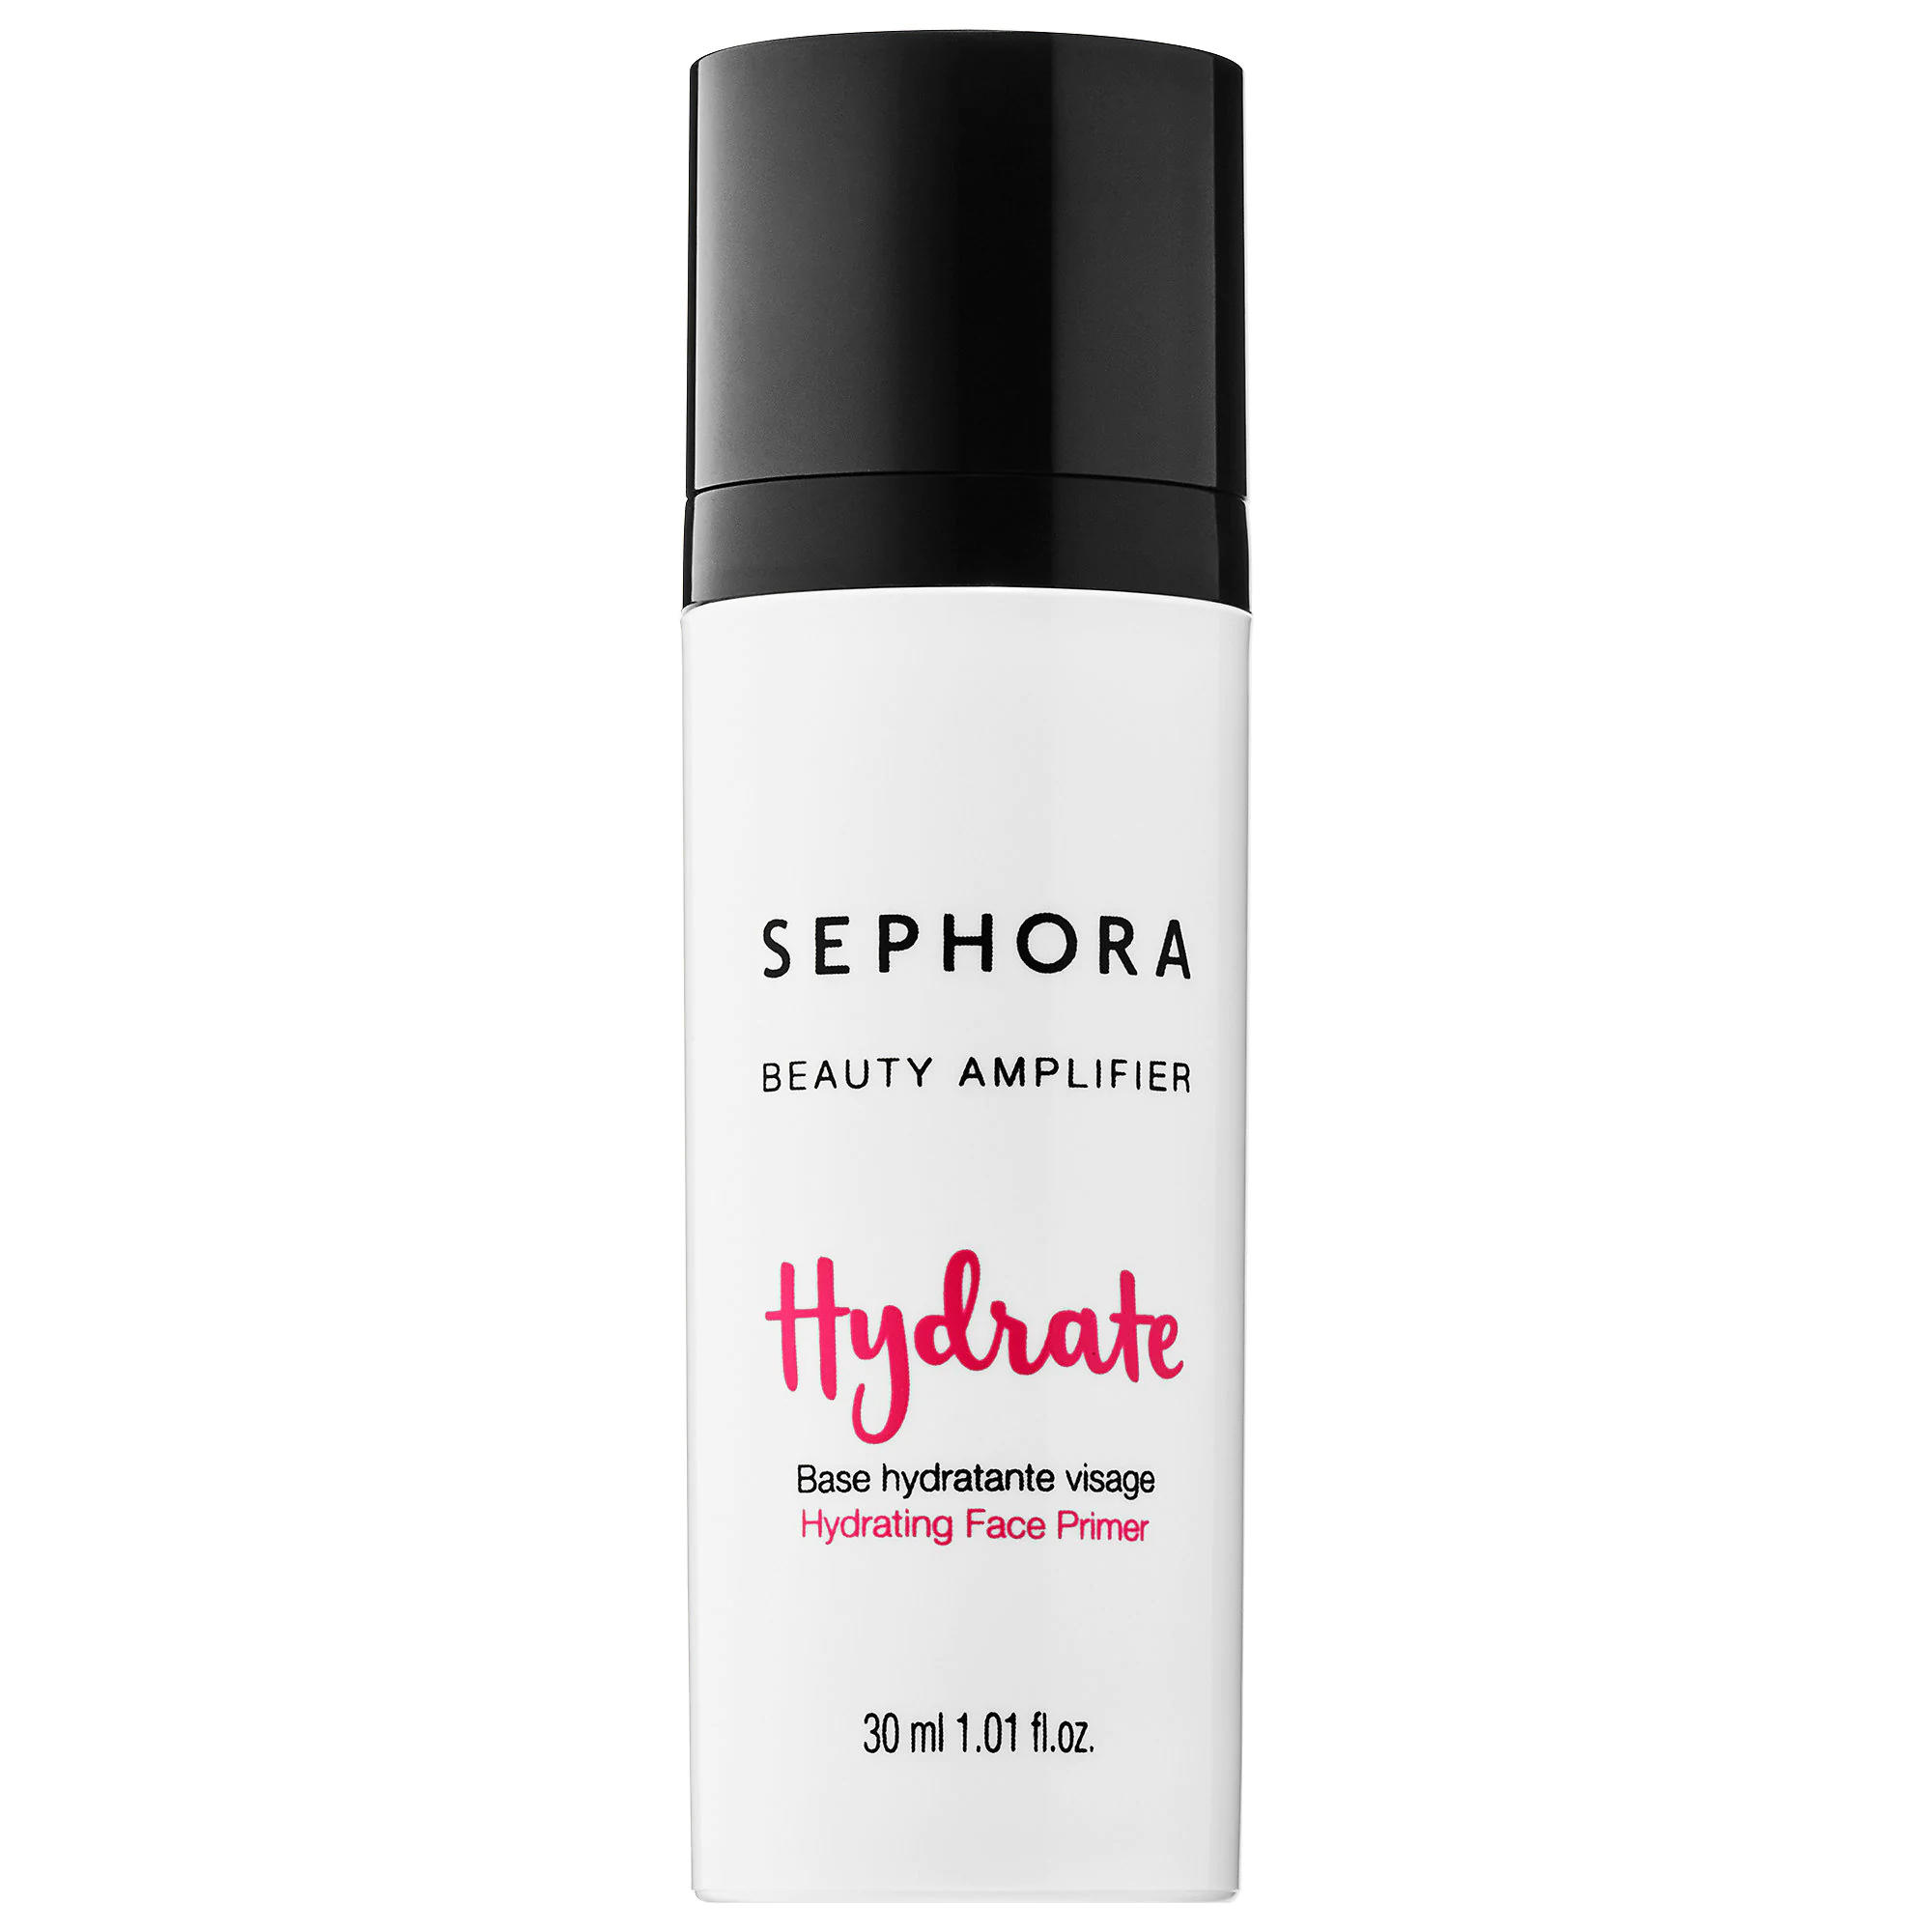 Sephora Beauty Amplifier Hydrating Face Primer